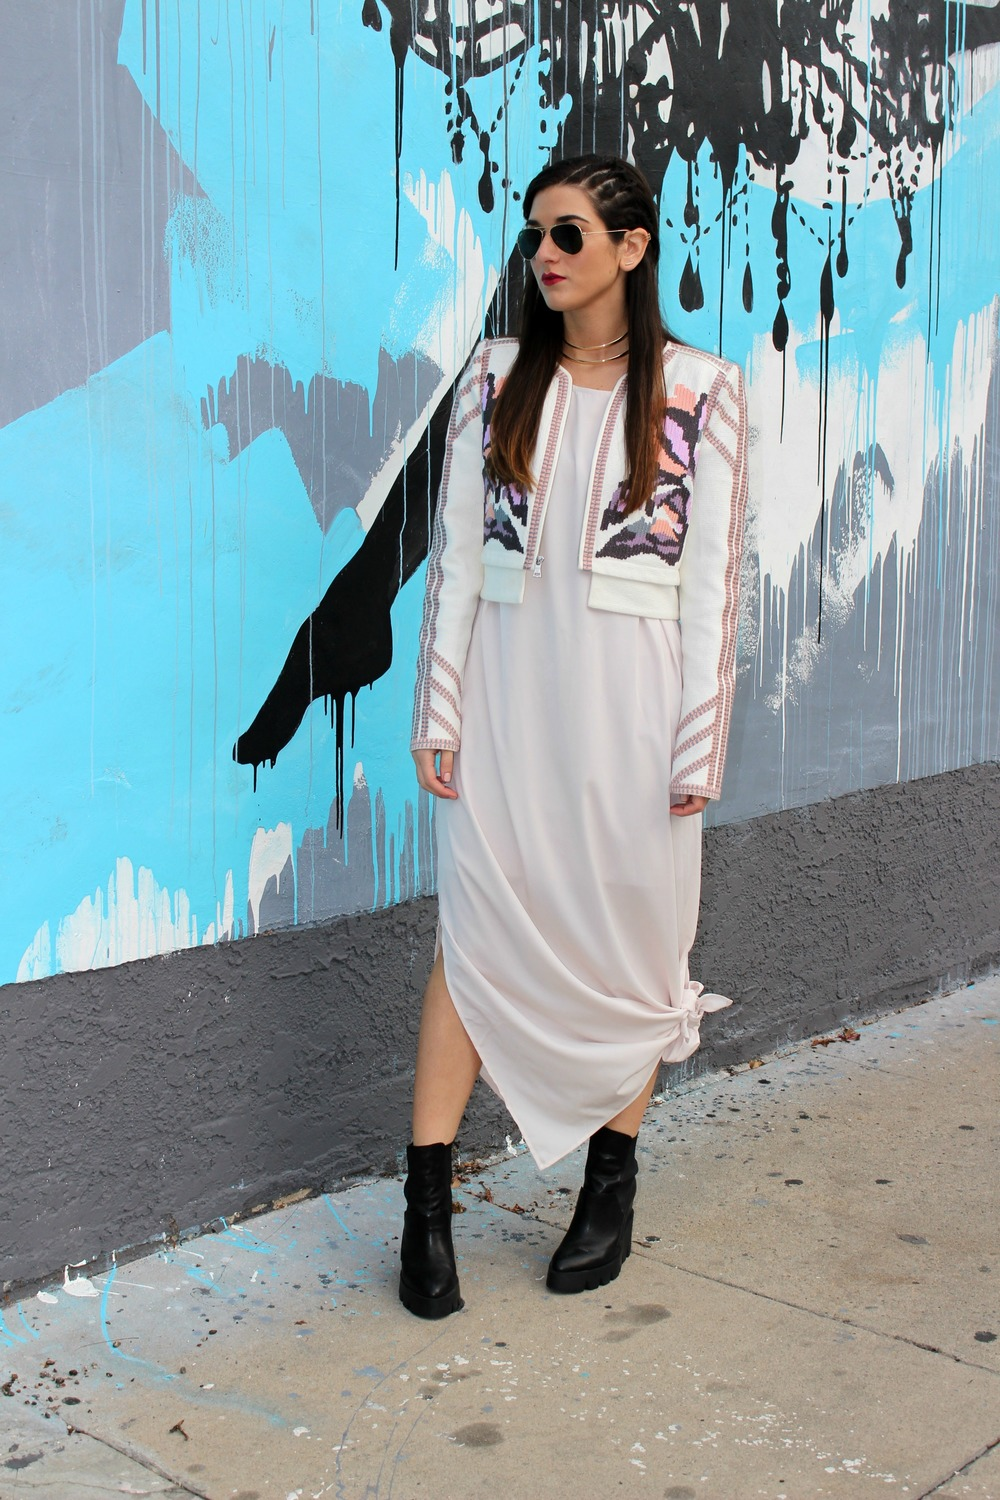 Knotted Maxi Dress Zehava Harel Louboutins & Love Fashion Blog Esther Santer NYC Street Style Blogger Blush Pink Modest Outfit OOTD BCBG Jacket Ash Booties Gold Collar Necklace RayBan Aviator Sunglasses Hair Inspo  Model Accessories Wear Model Women.jpg